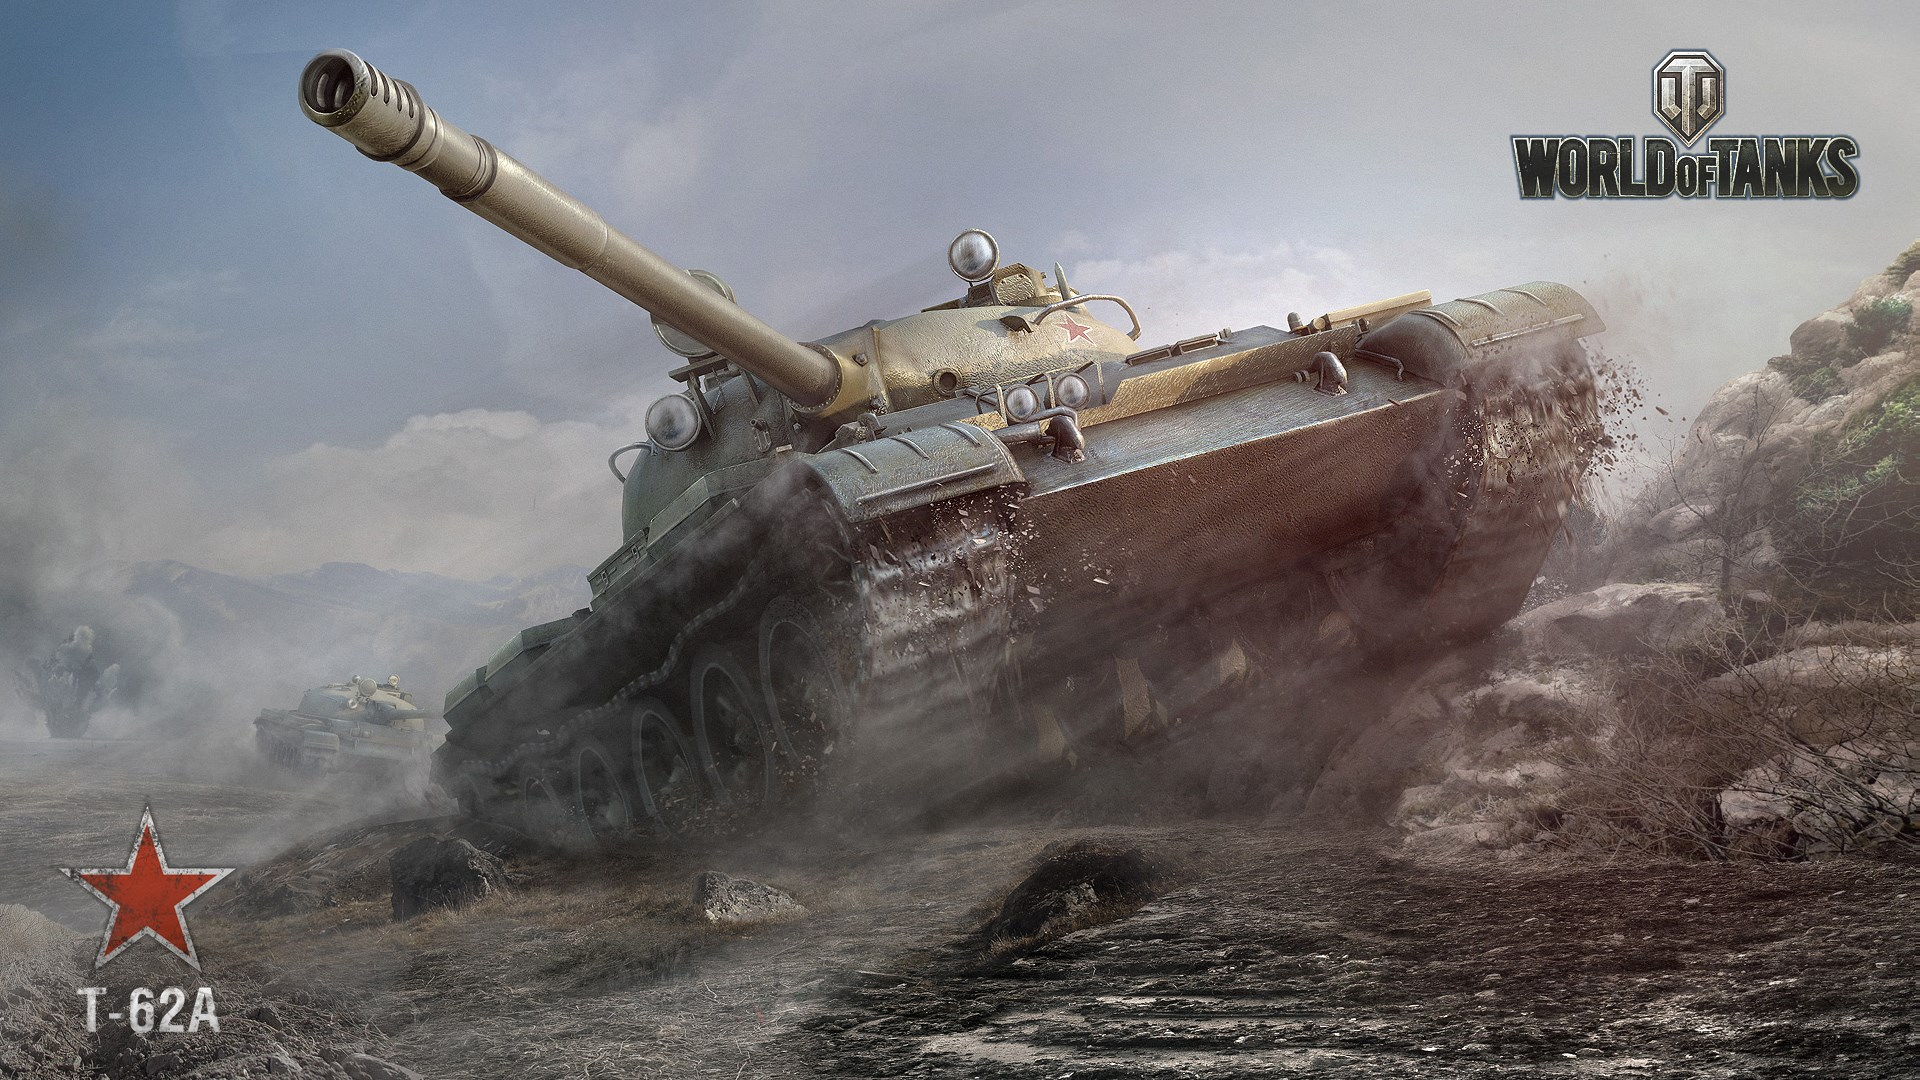 World of tanks - Т-62А